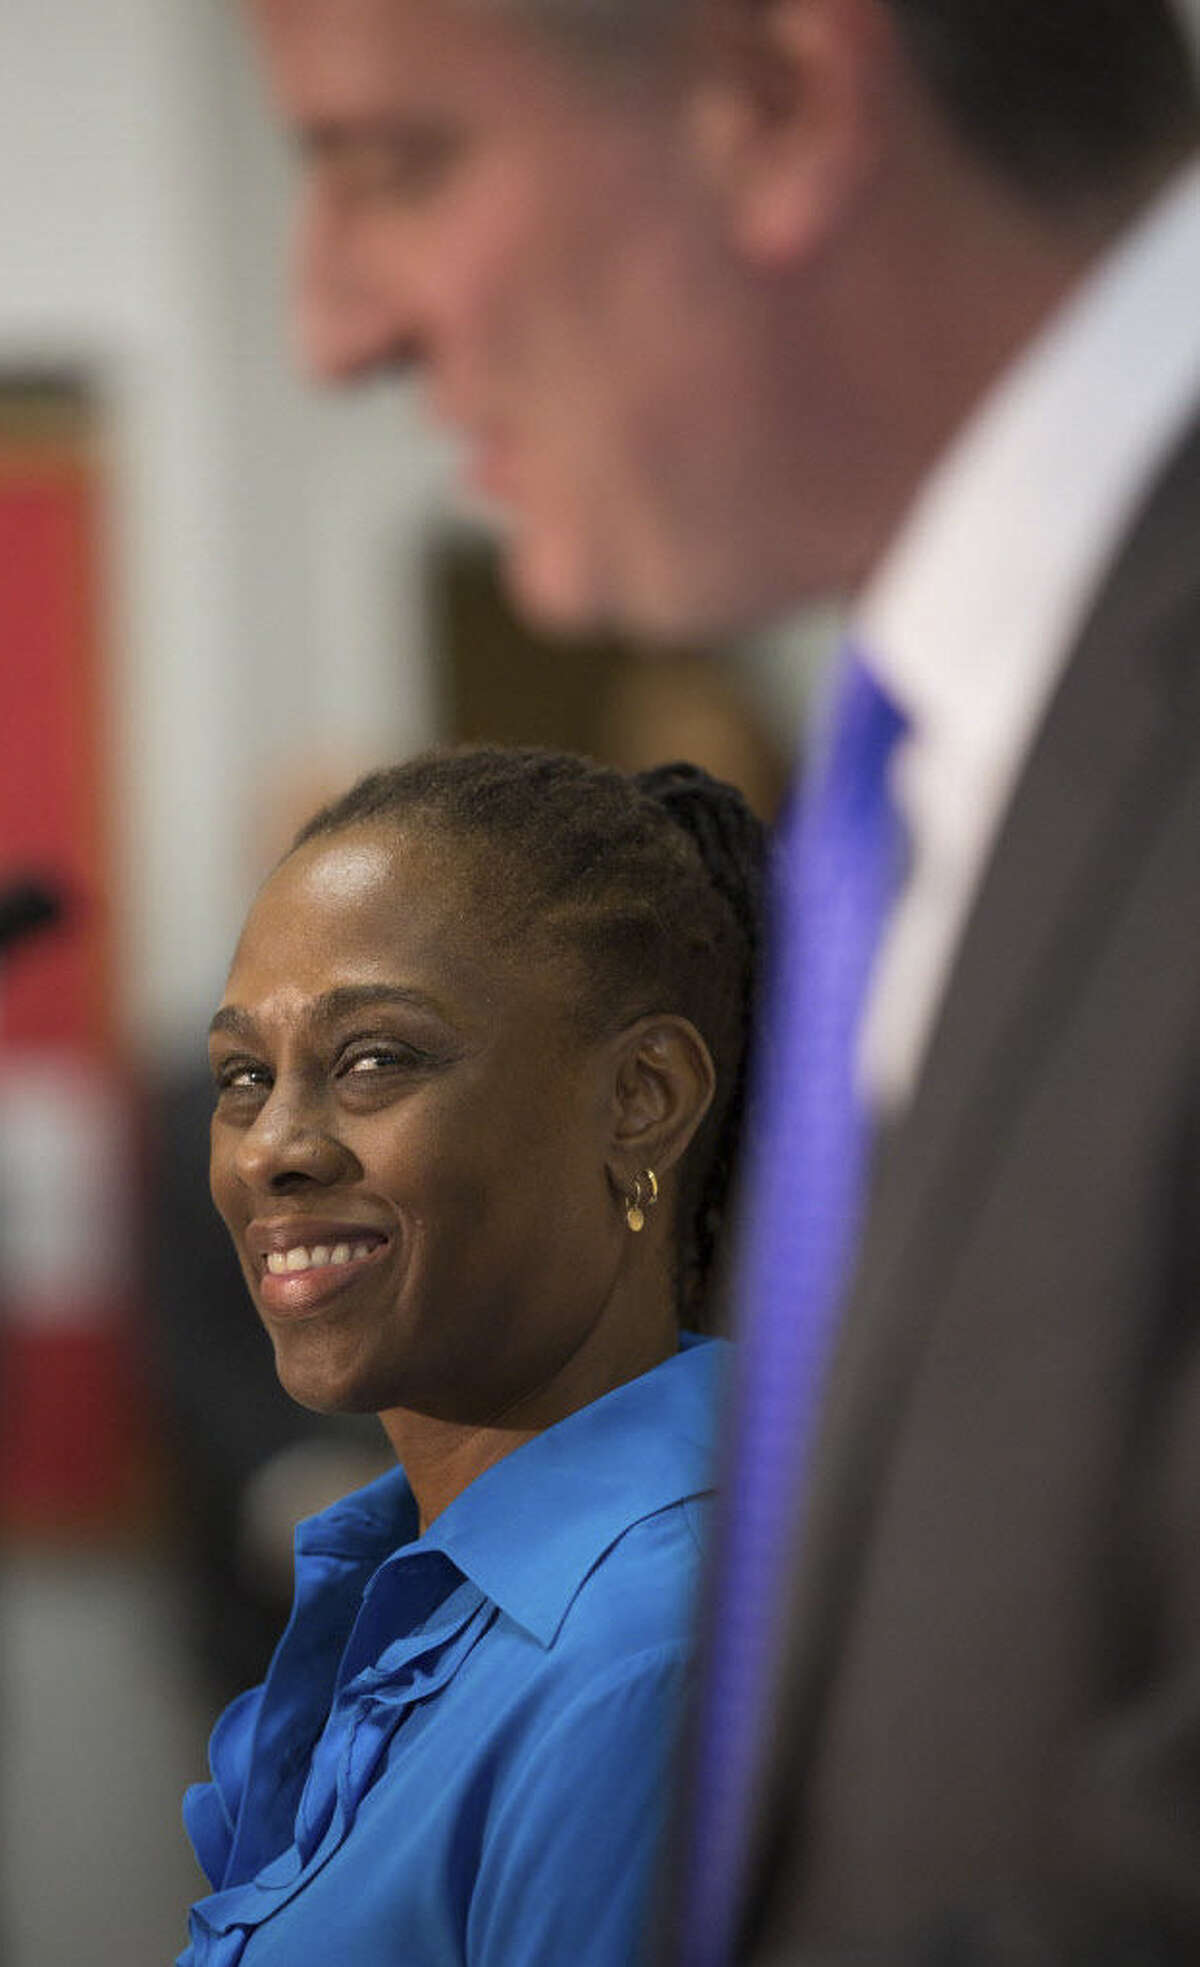 Chirlane McCray, wife of New York City Mayor Bill de Blasio, has received criticism for saying she didn't want to spend every day with her infant daughter, who is now 19. People were quick - and wrong - to apply the